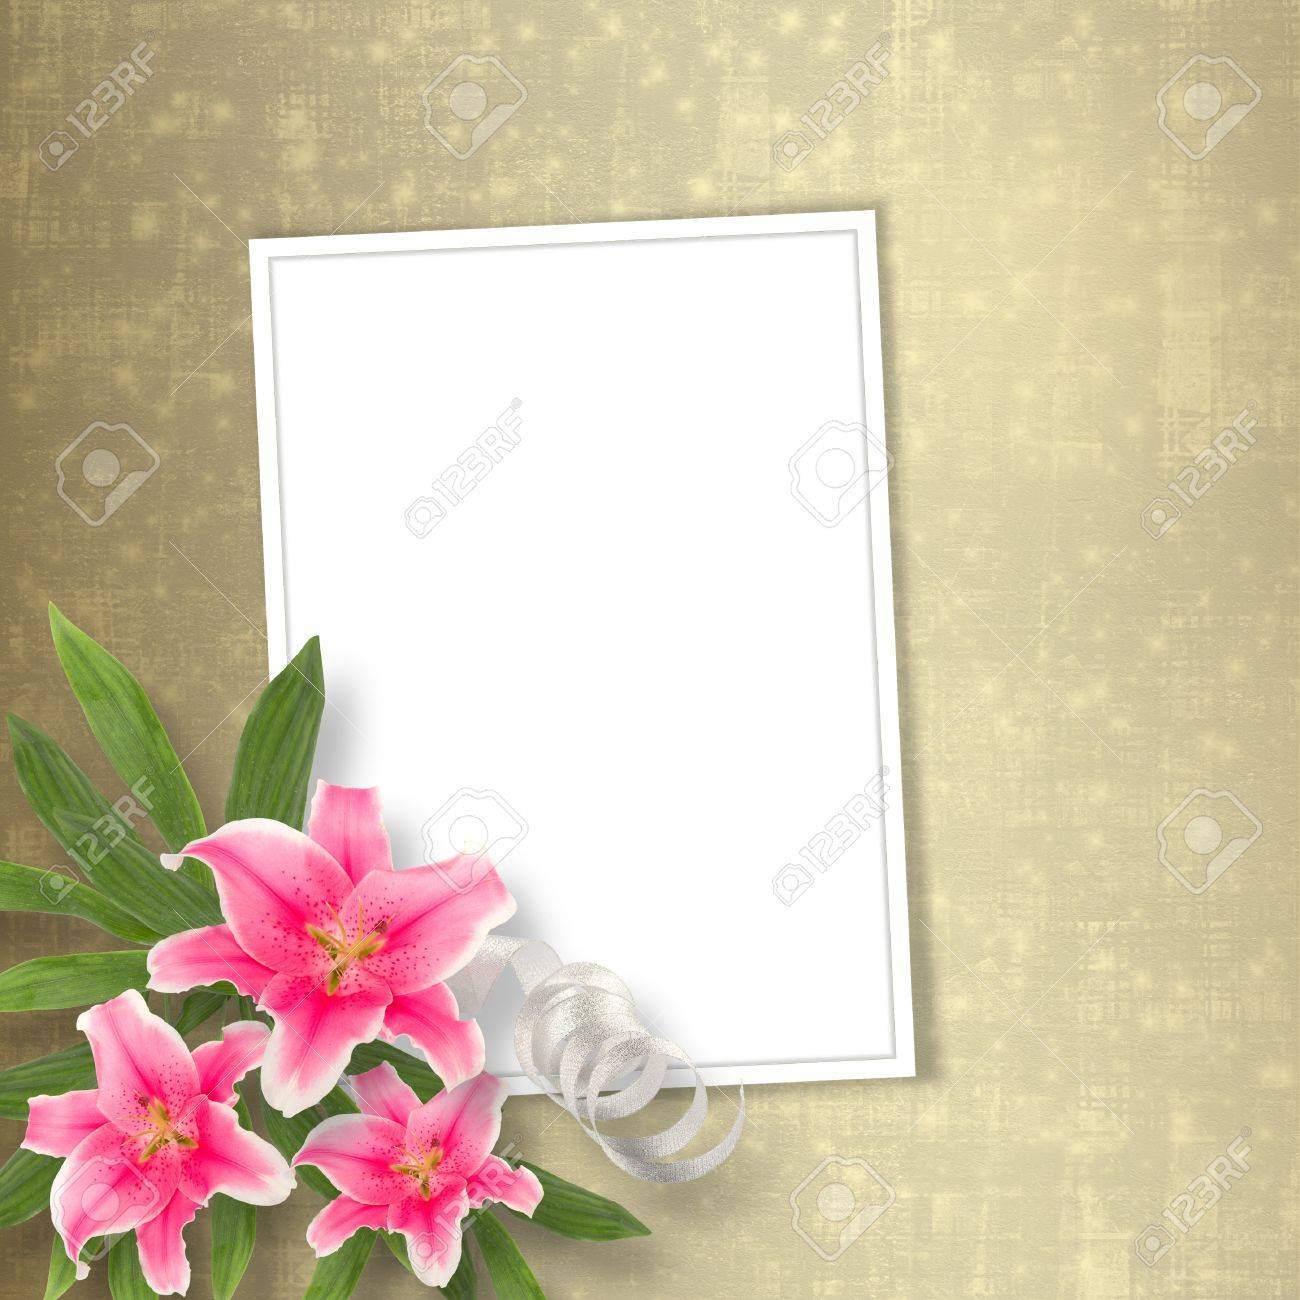 Card for congratulation or invitation with bunch of flowers Stock Photo - 12313864